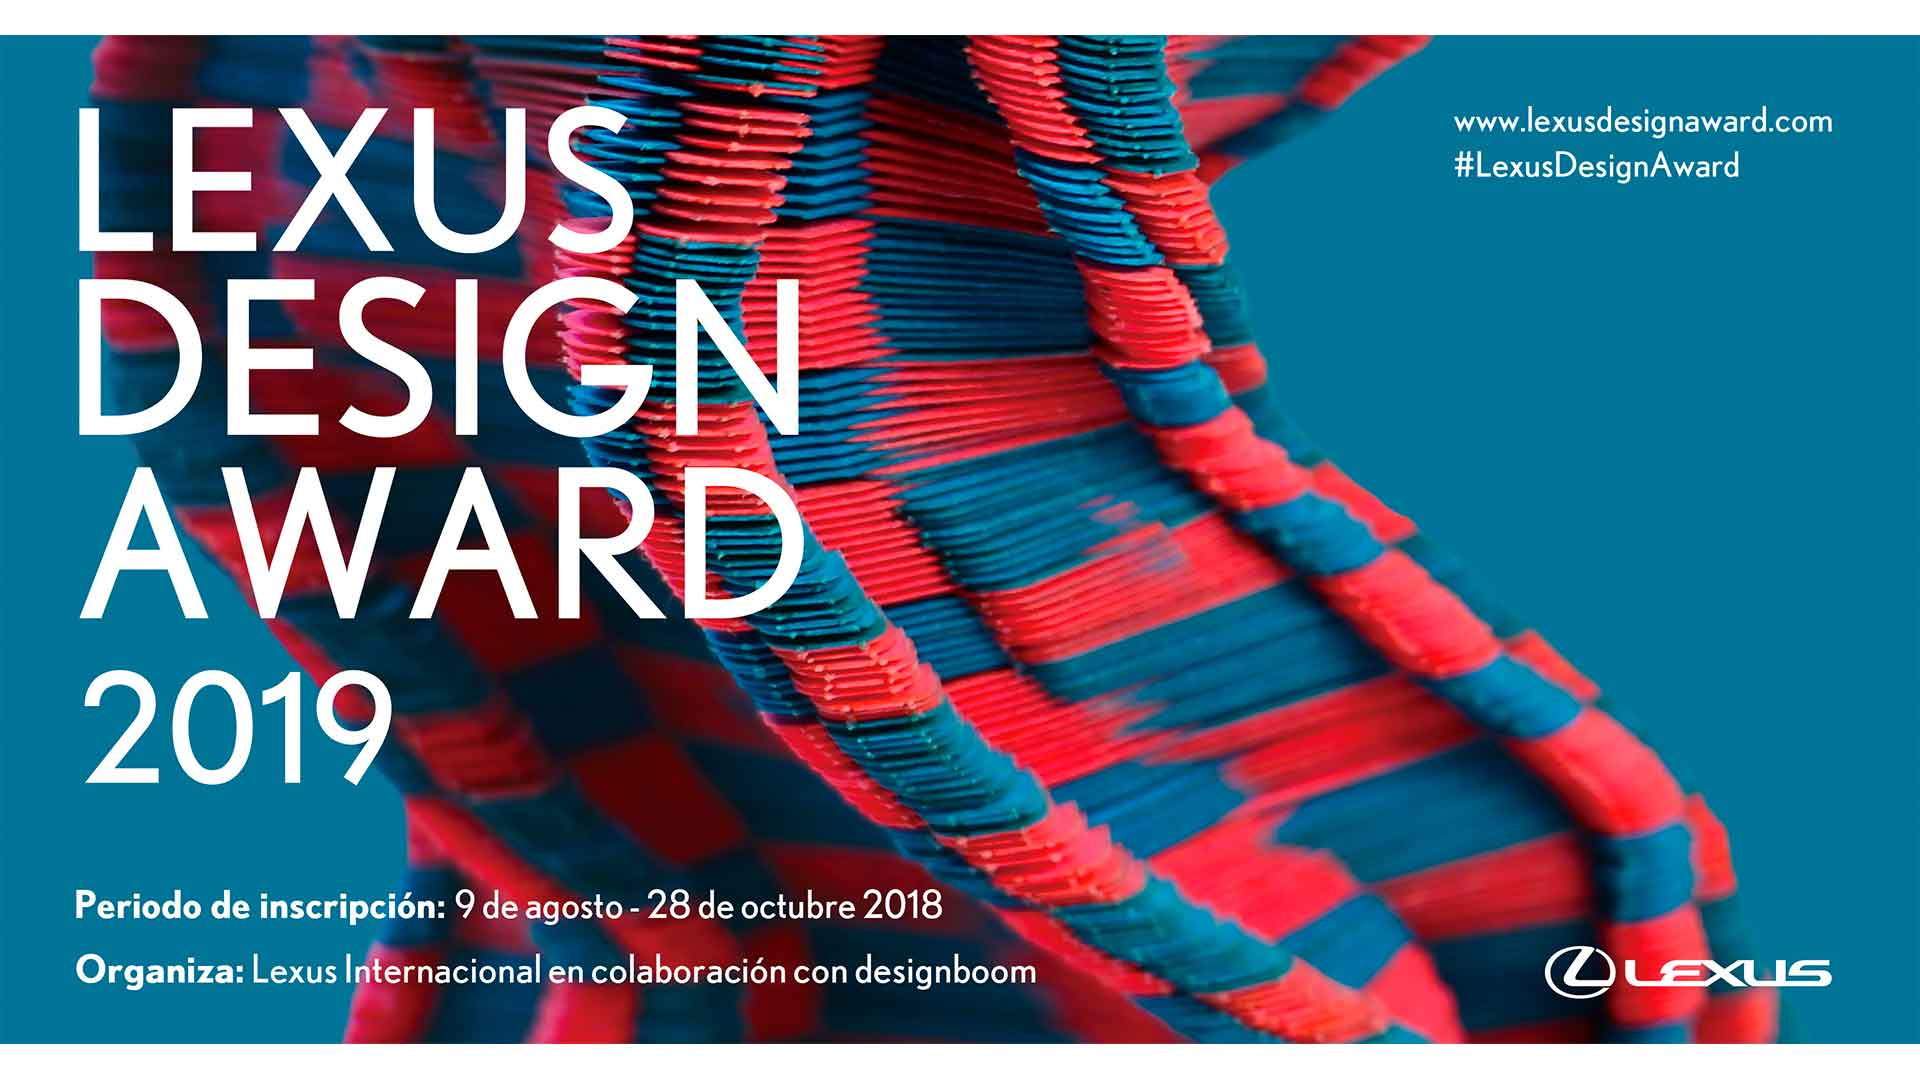 LEXUS DESIGN AWARD 2019 hero asset